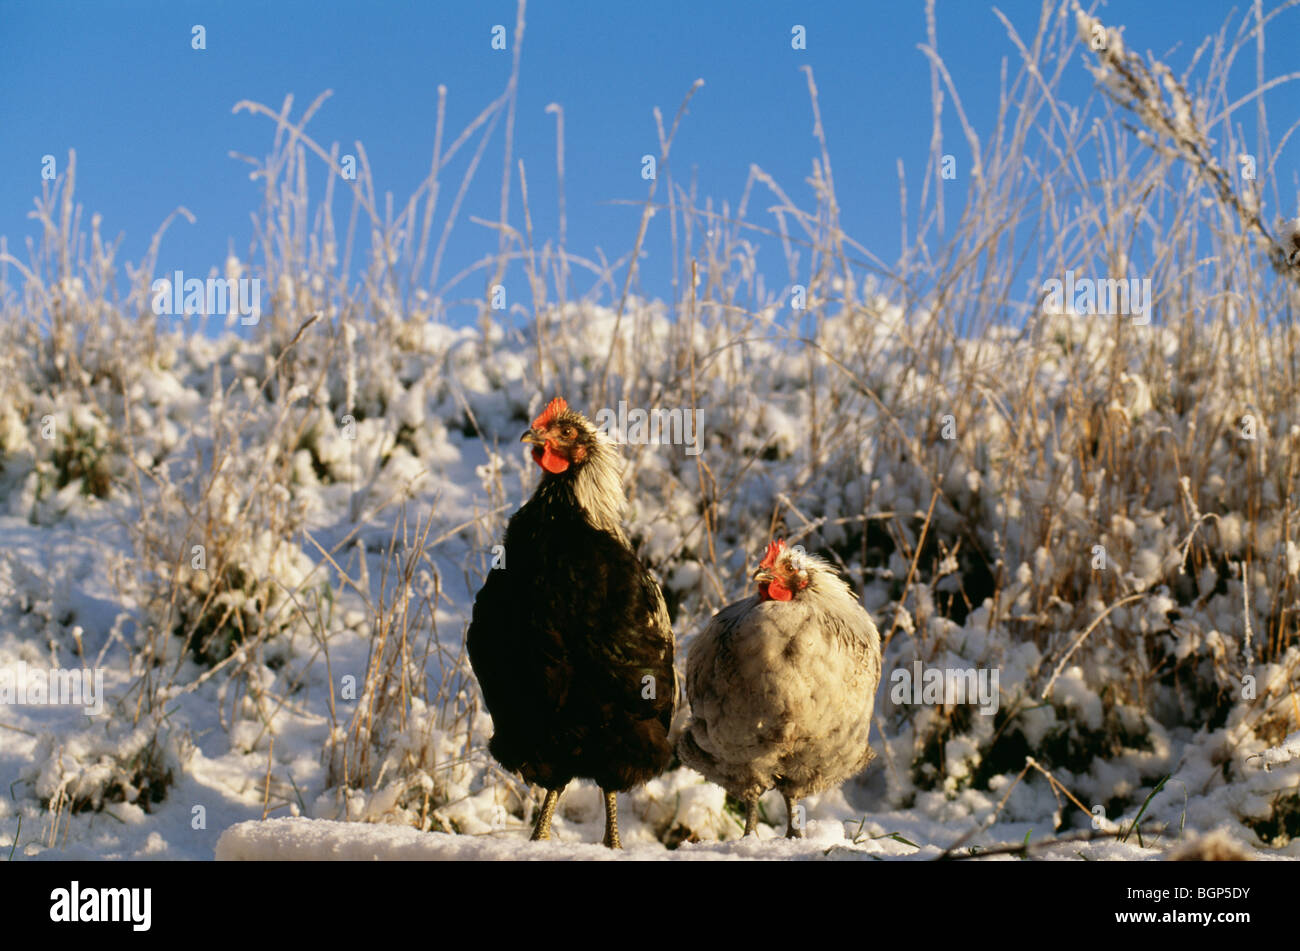 Two hens, Sweden. - Stock Image